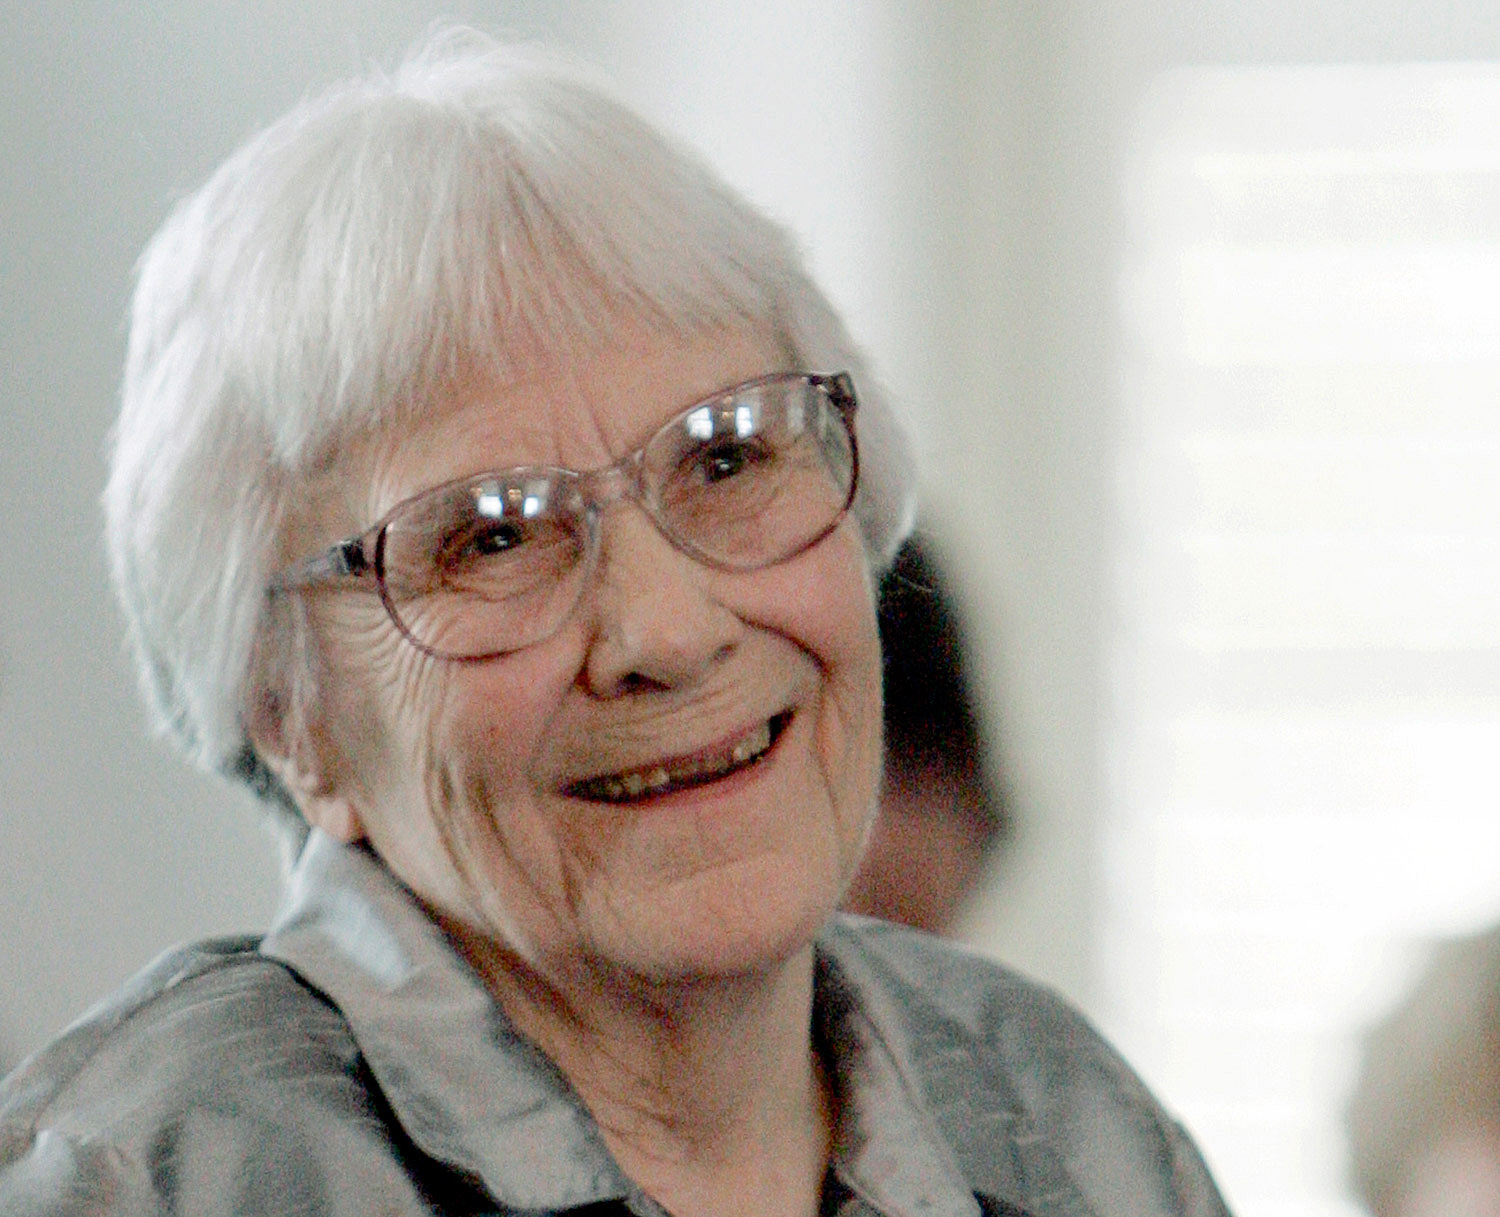 harper lee pulitzer prize winning author of to kill a harper lee pulitzer prize winning author of to kill a mockingbird dies at 89 portland press herald